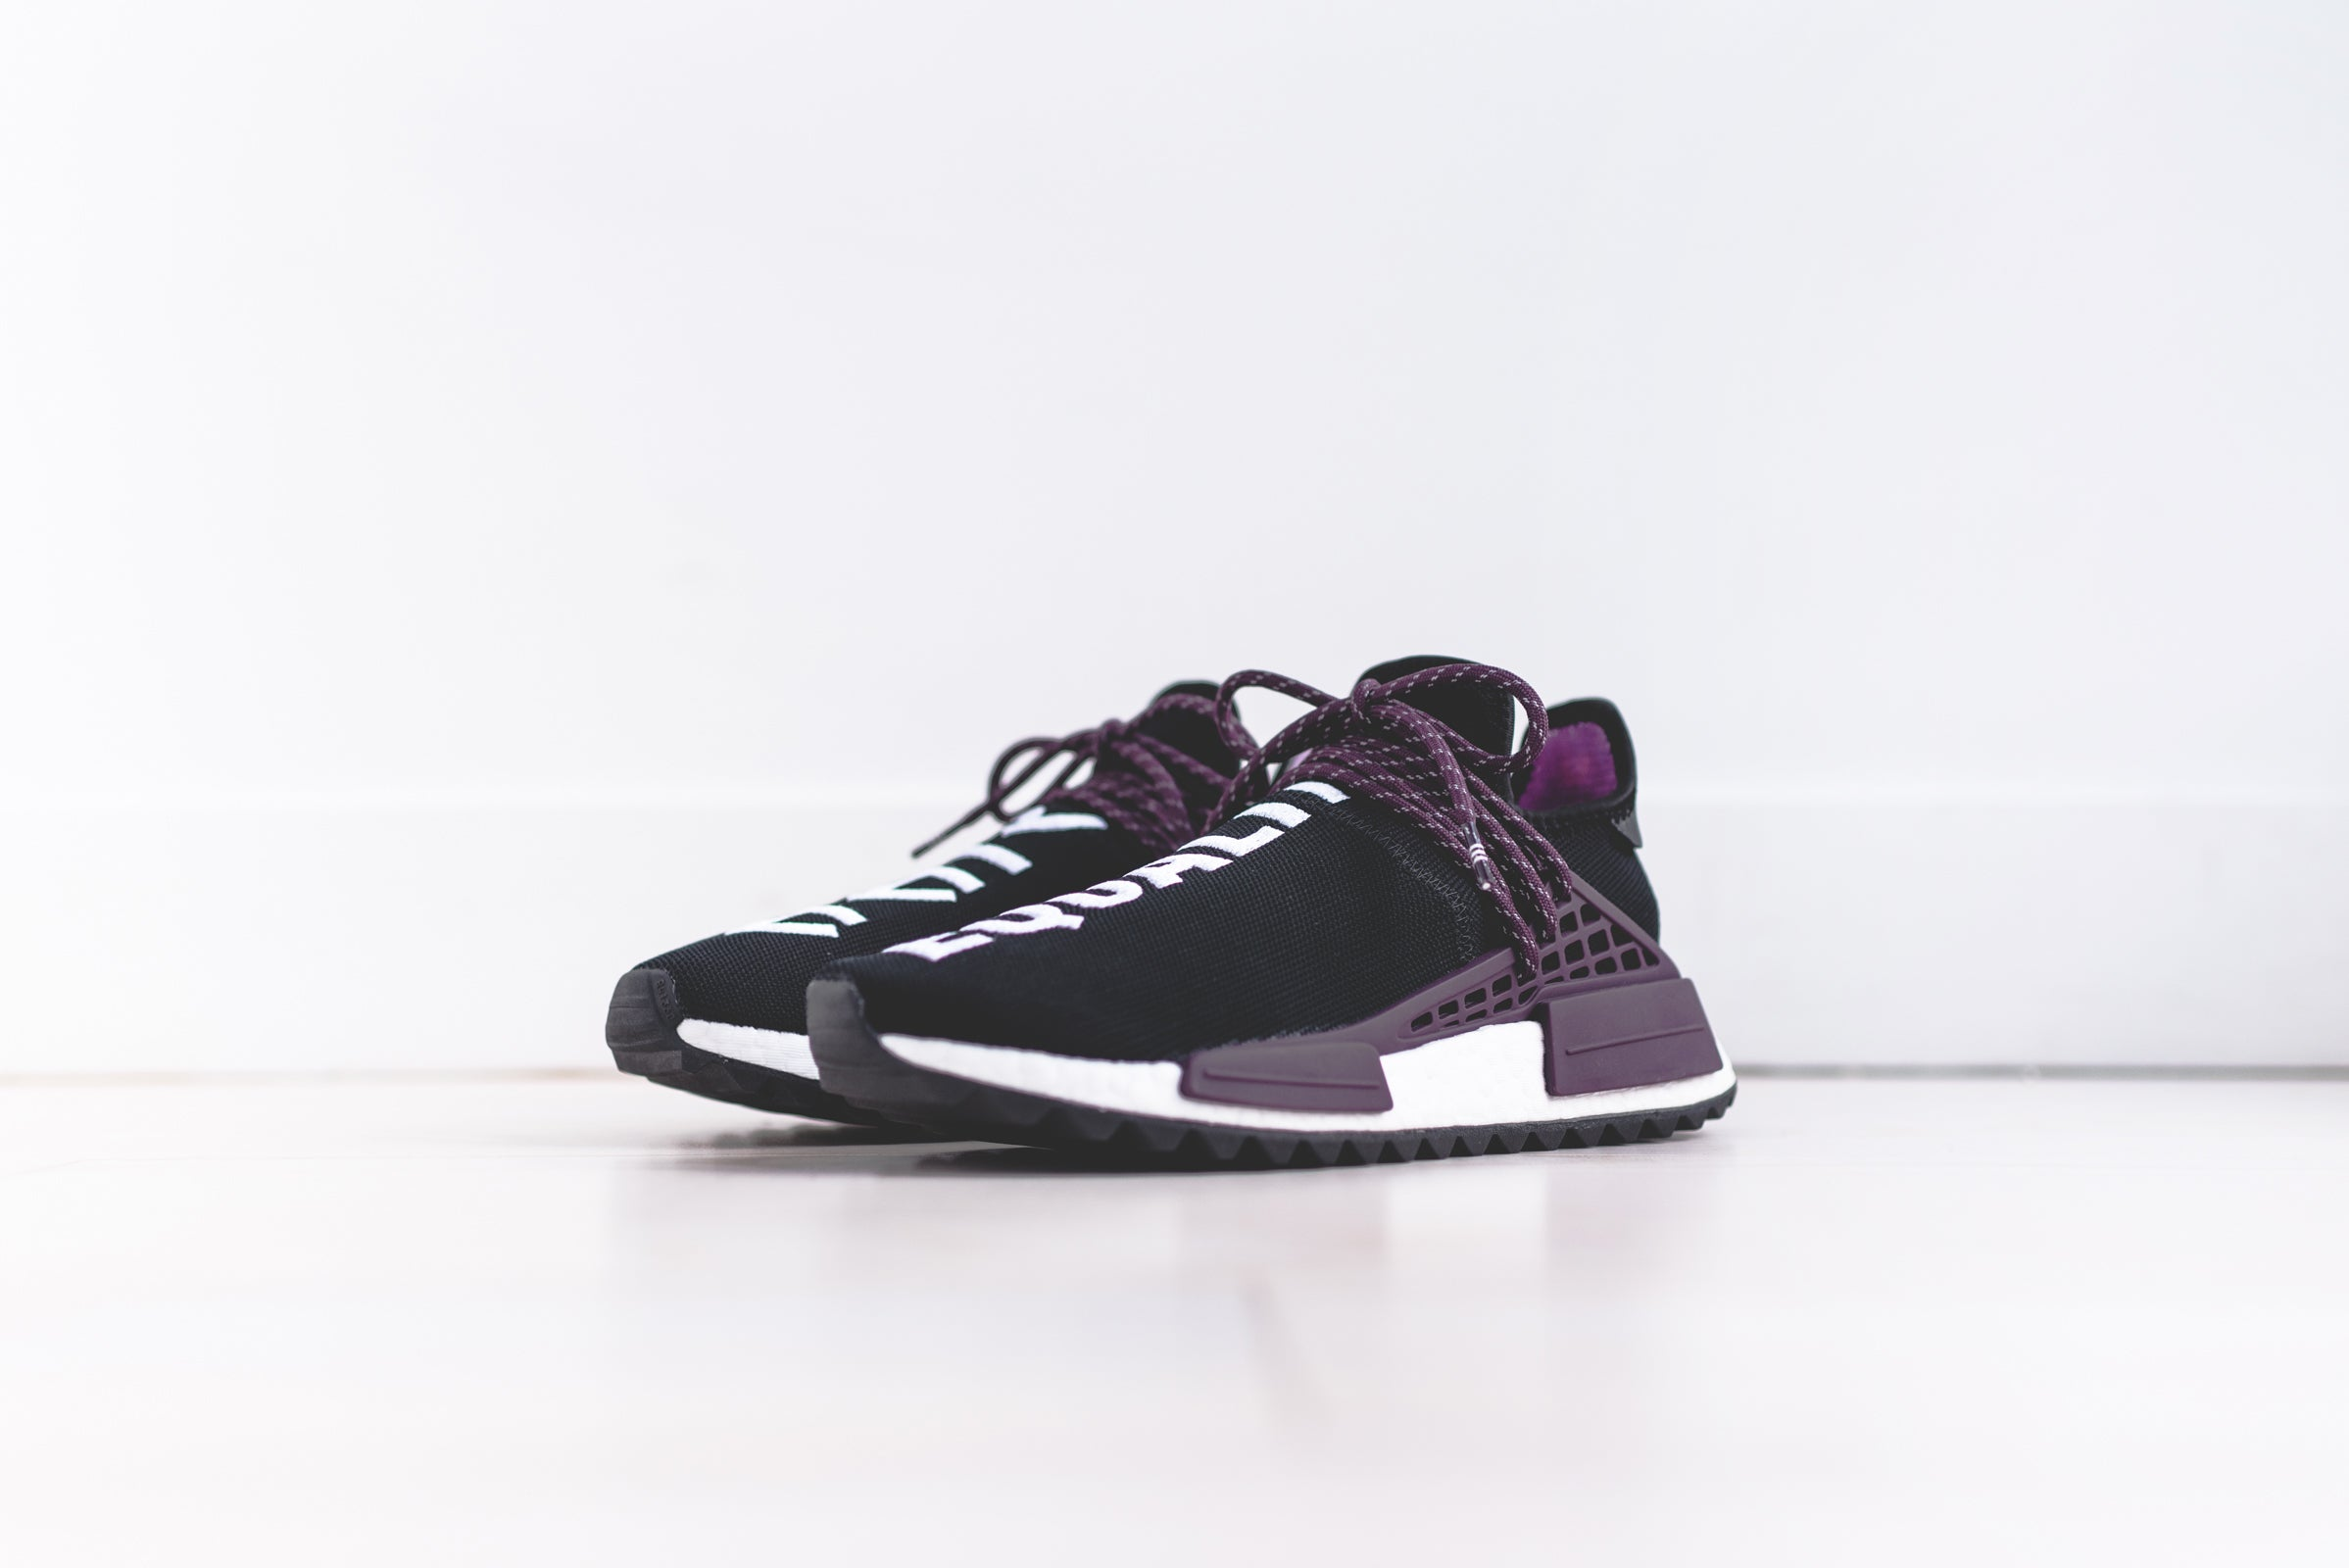 adidas Originals x Pharrell Williams Hu Holi NMD MC - Black / Black